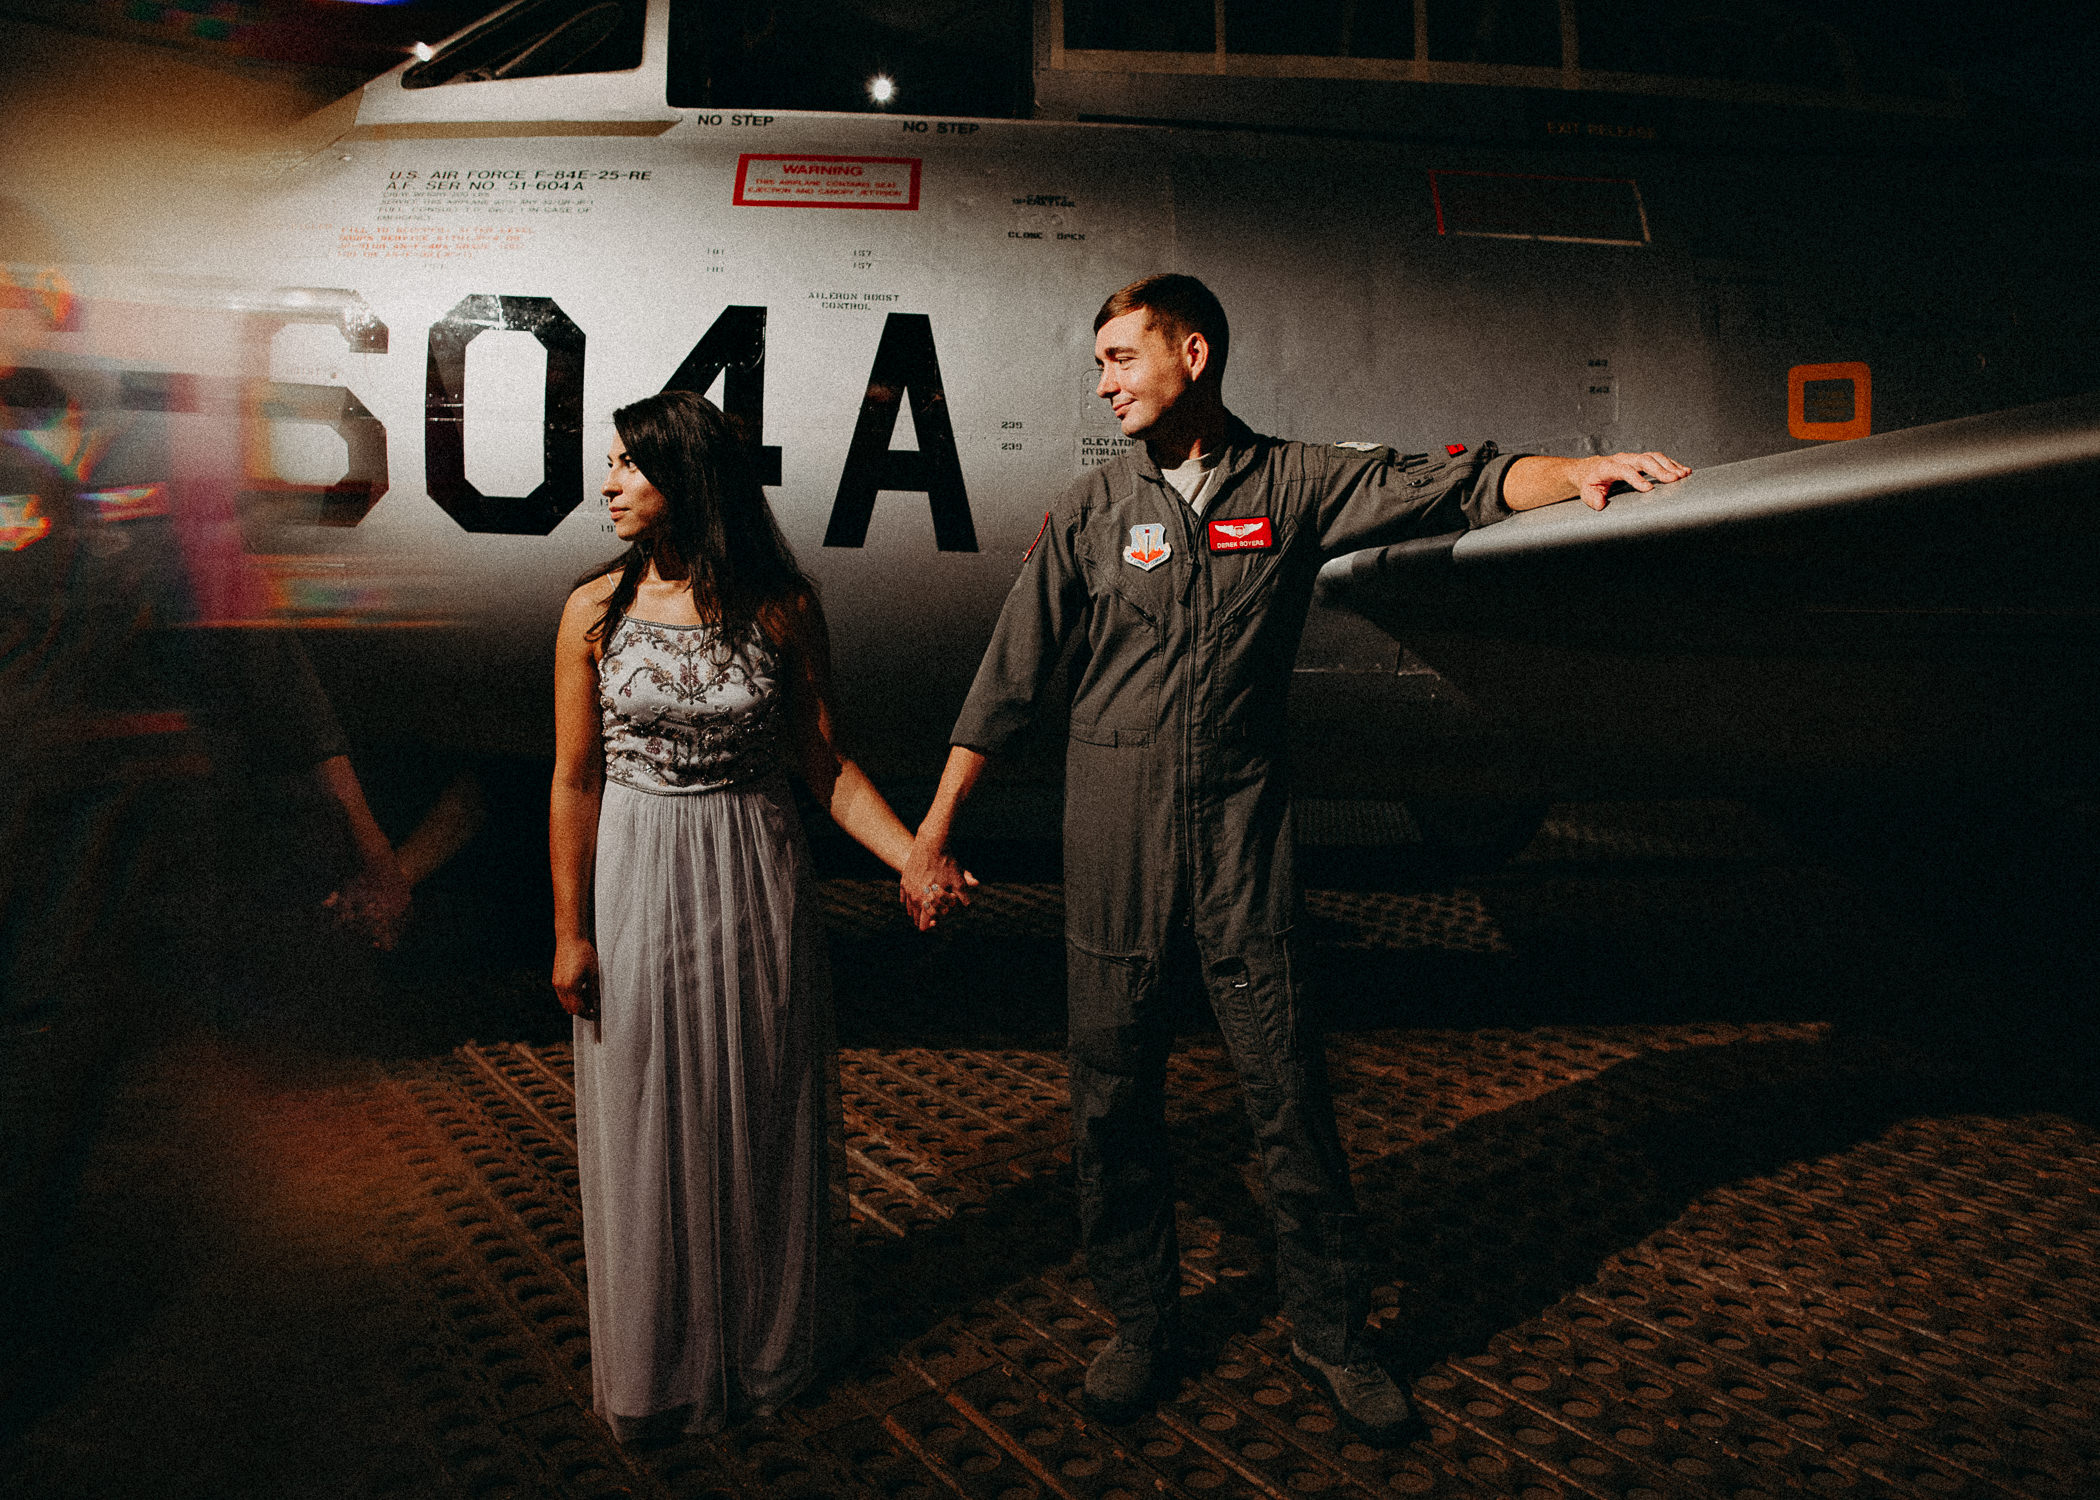 7 Museum of aviation engagement shoot - preview - Aline Marin Atlanta Photographer .jpg